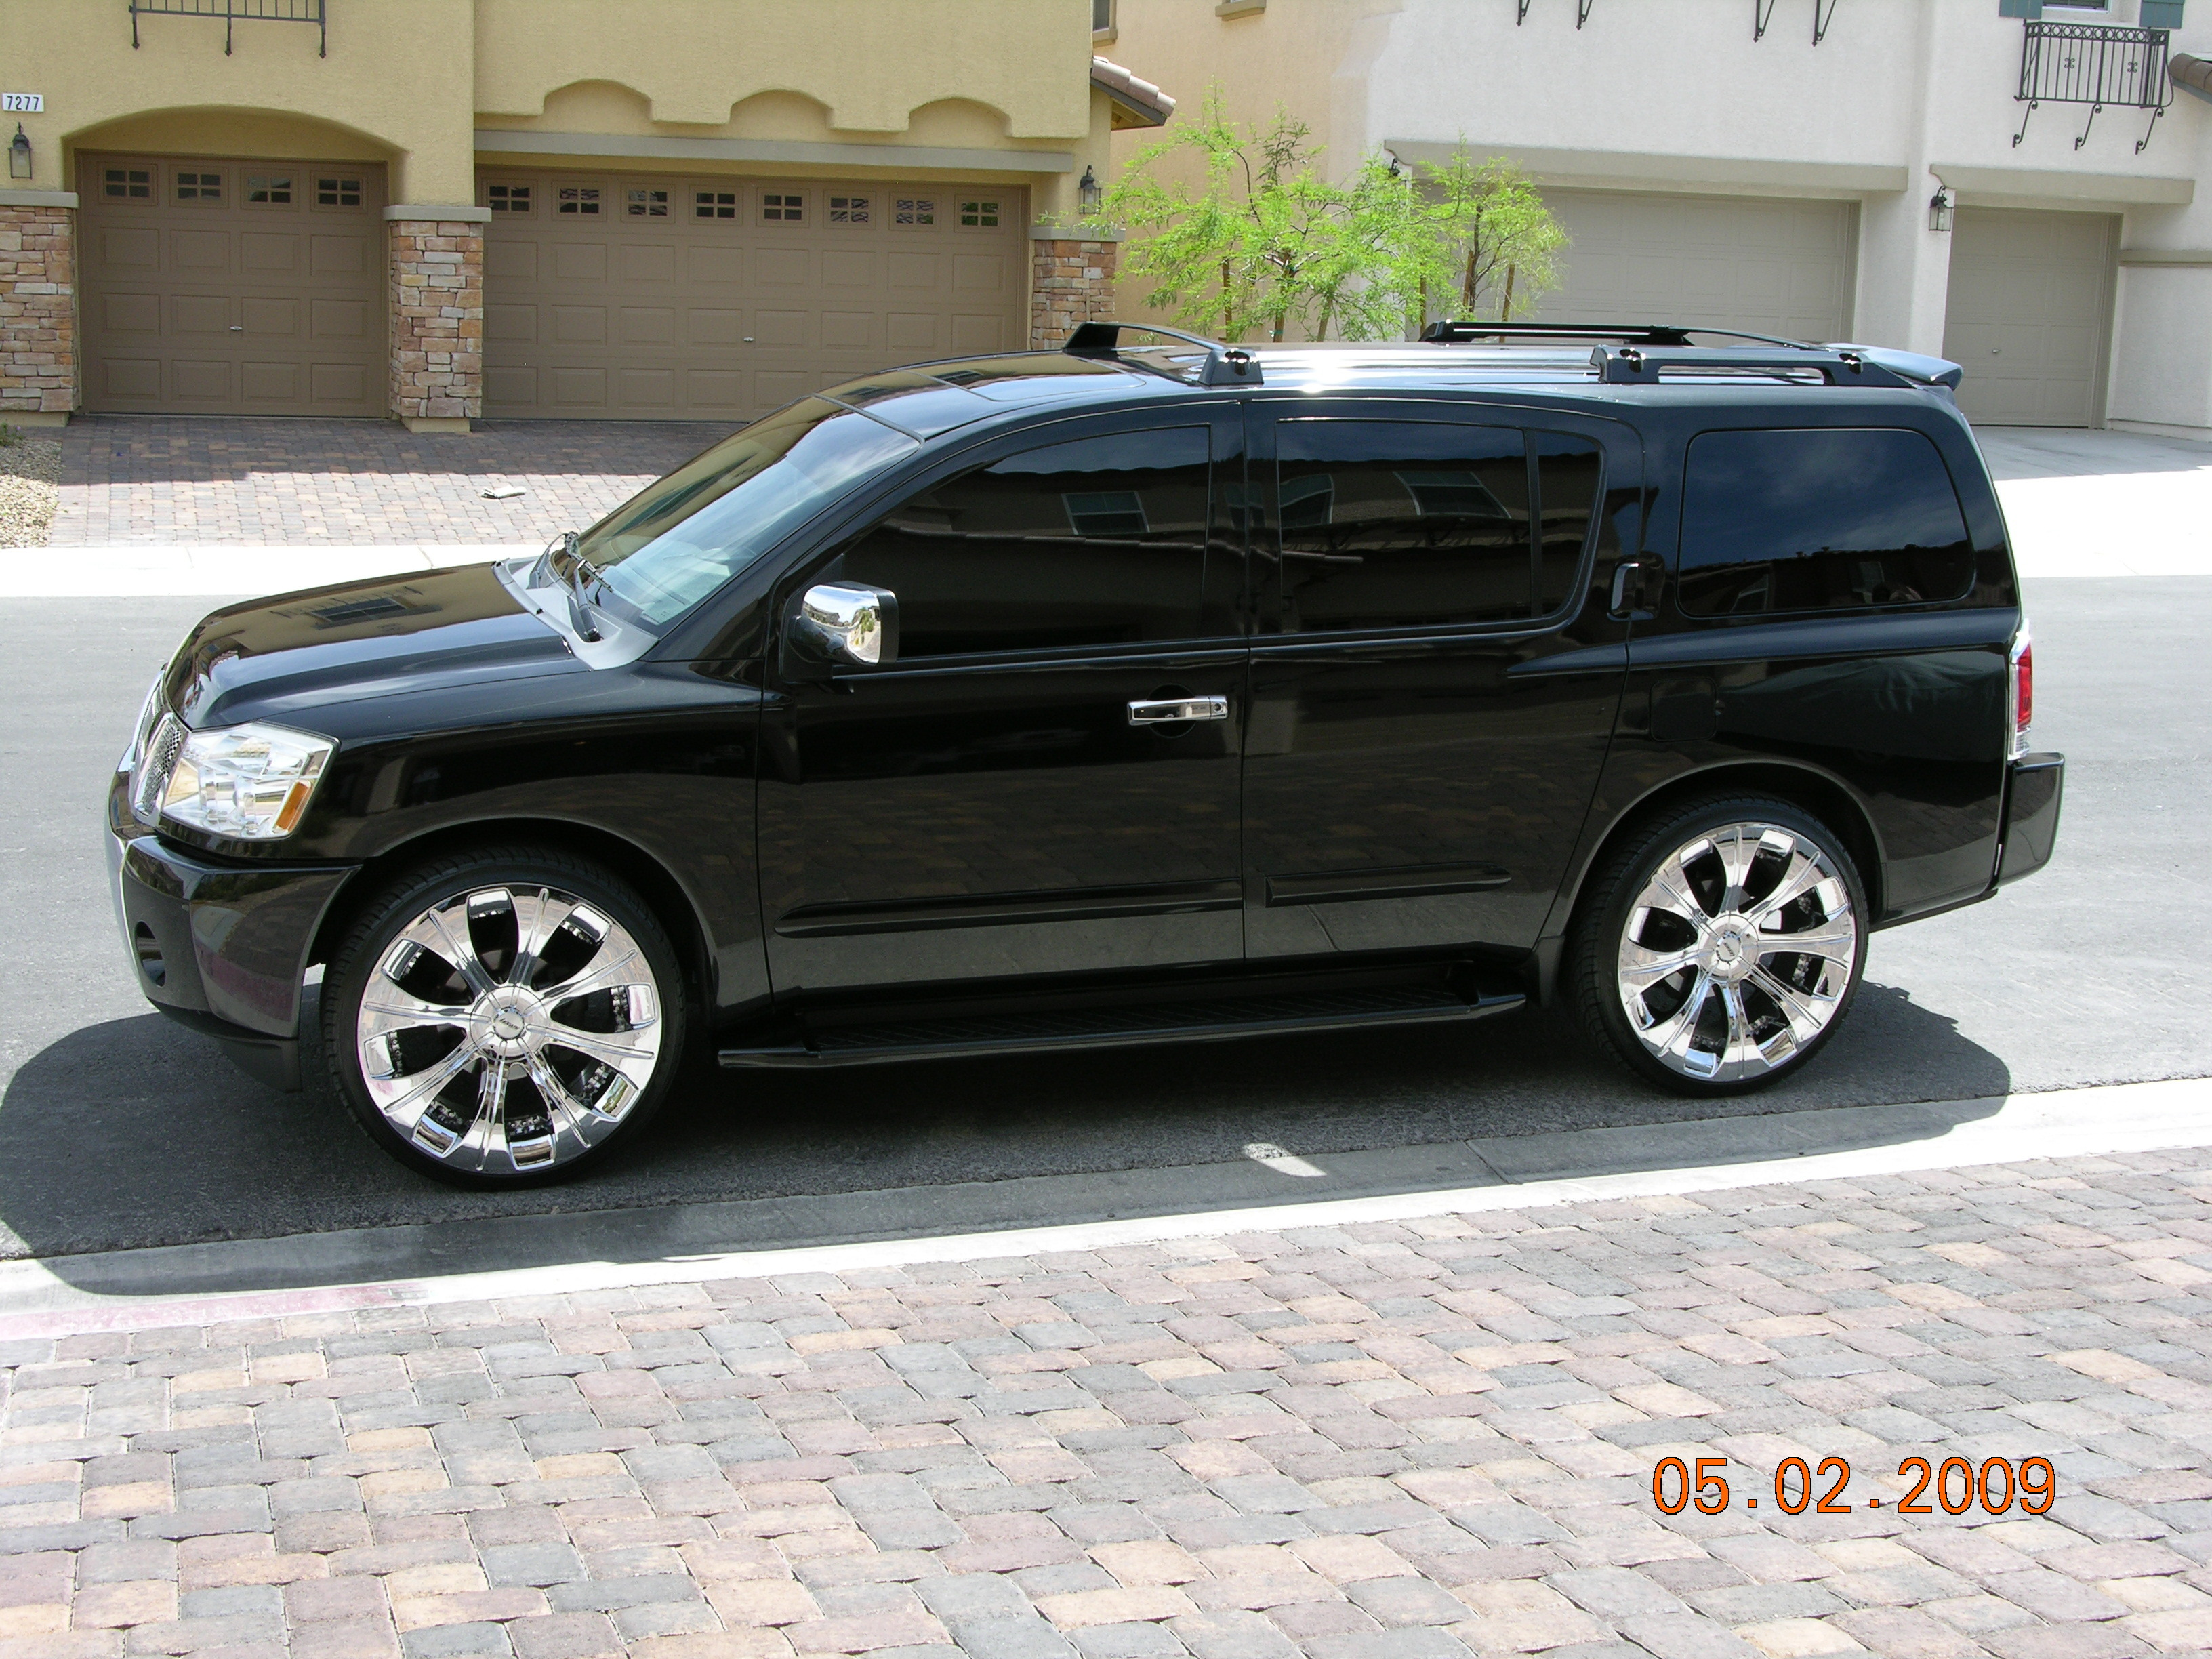 sirvegas 2005 nissan pathfinder armada specs photos modification info at cardomain. Black Bedroom Furniture Sets. Home Design Ideas